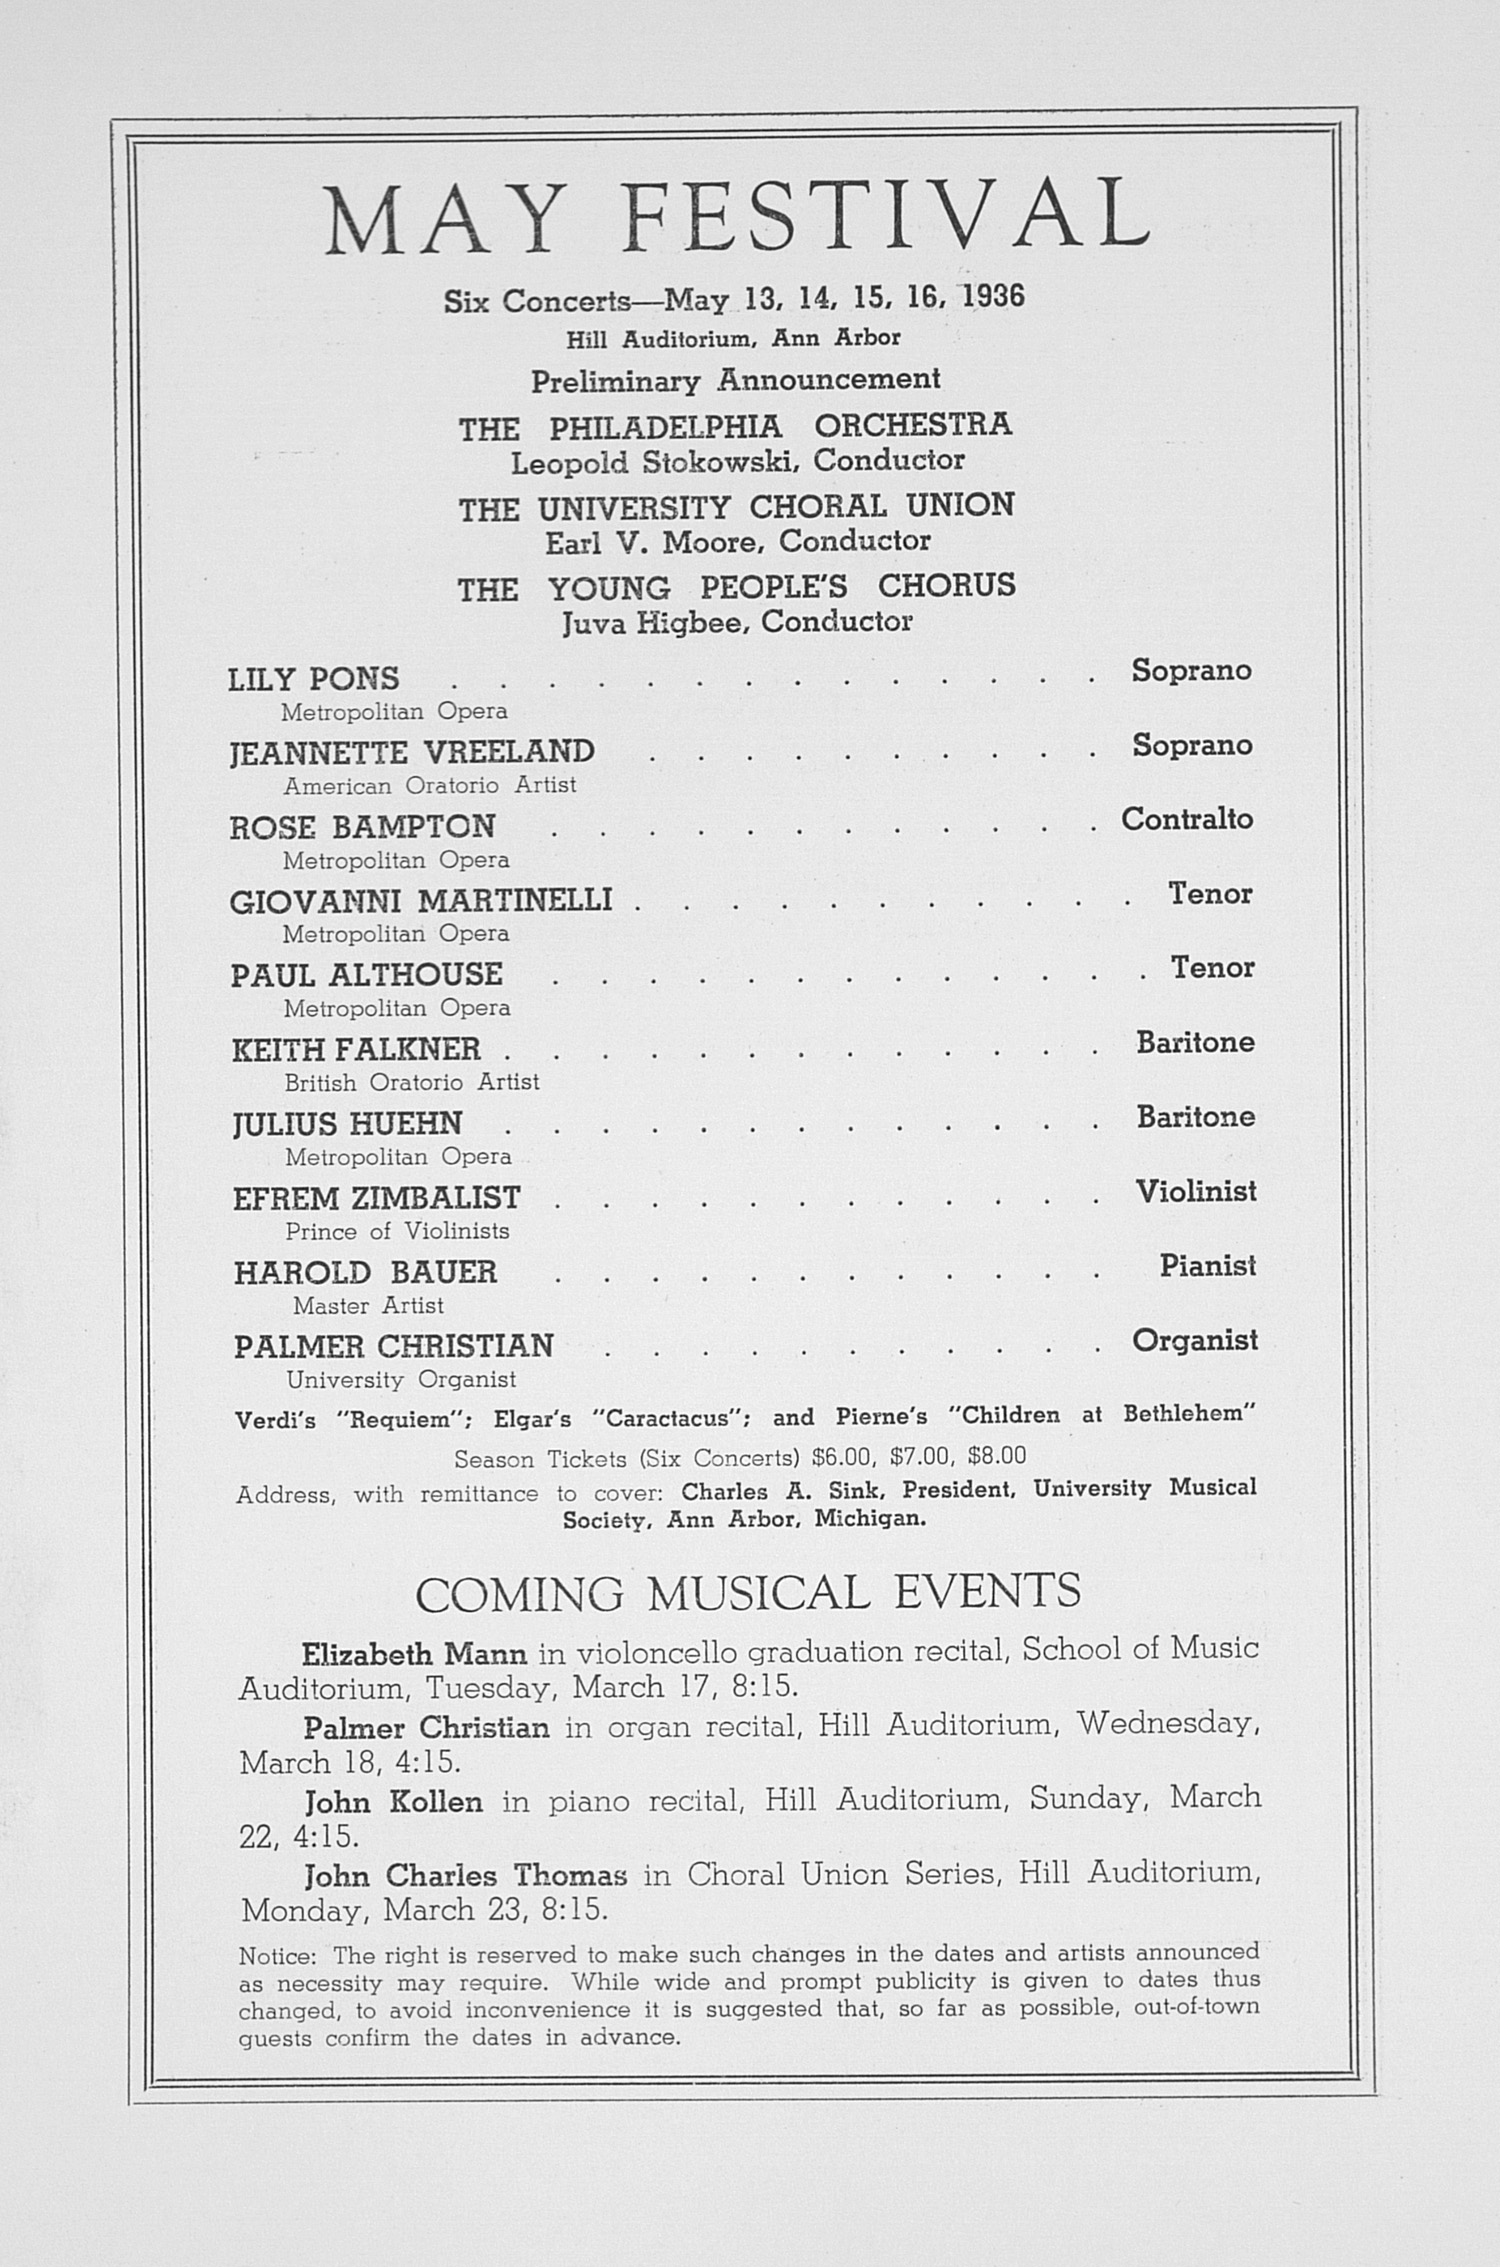 UMS Concert Program, March 16, 1936: Fifty-seventh Annual Choral Union Concert Series -- Albert Spalding image